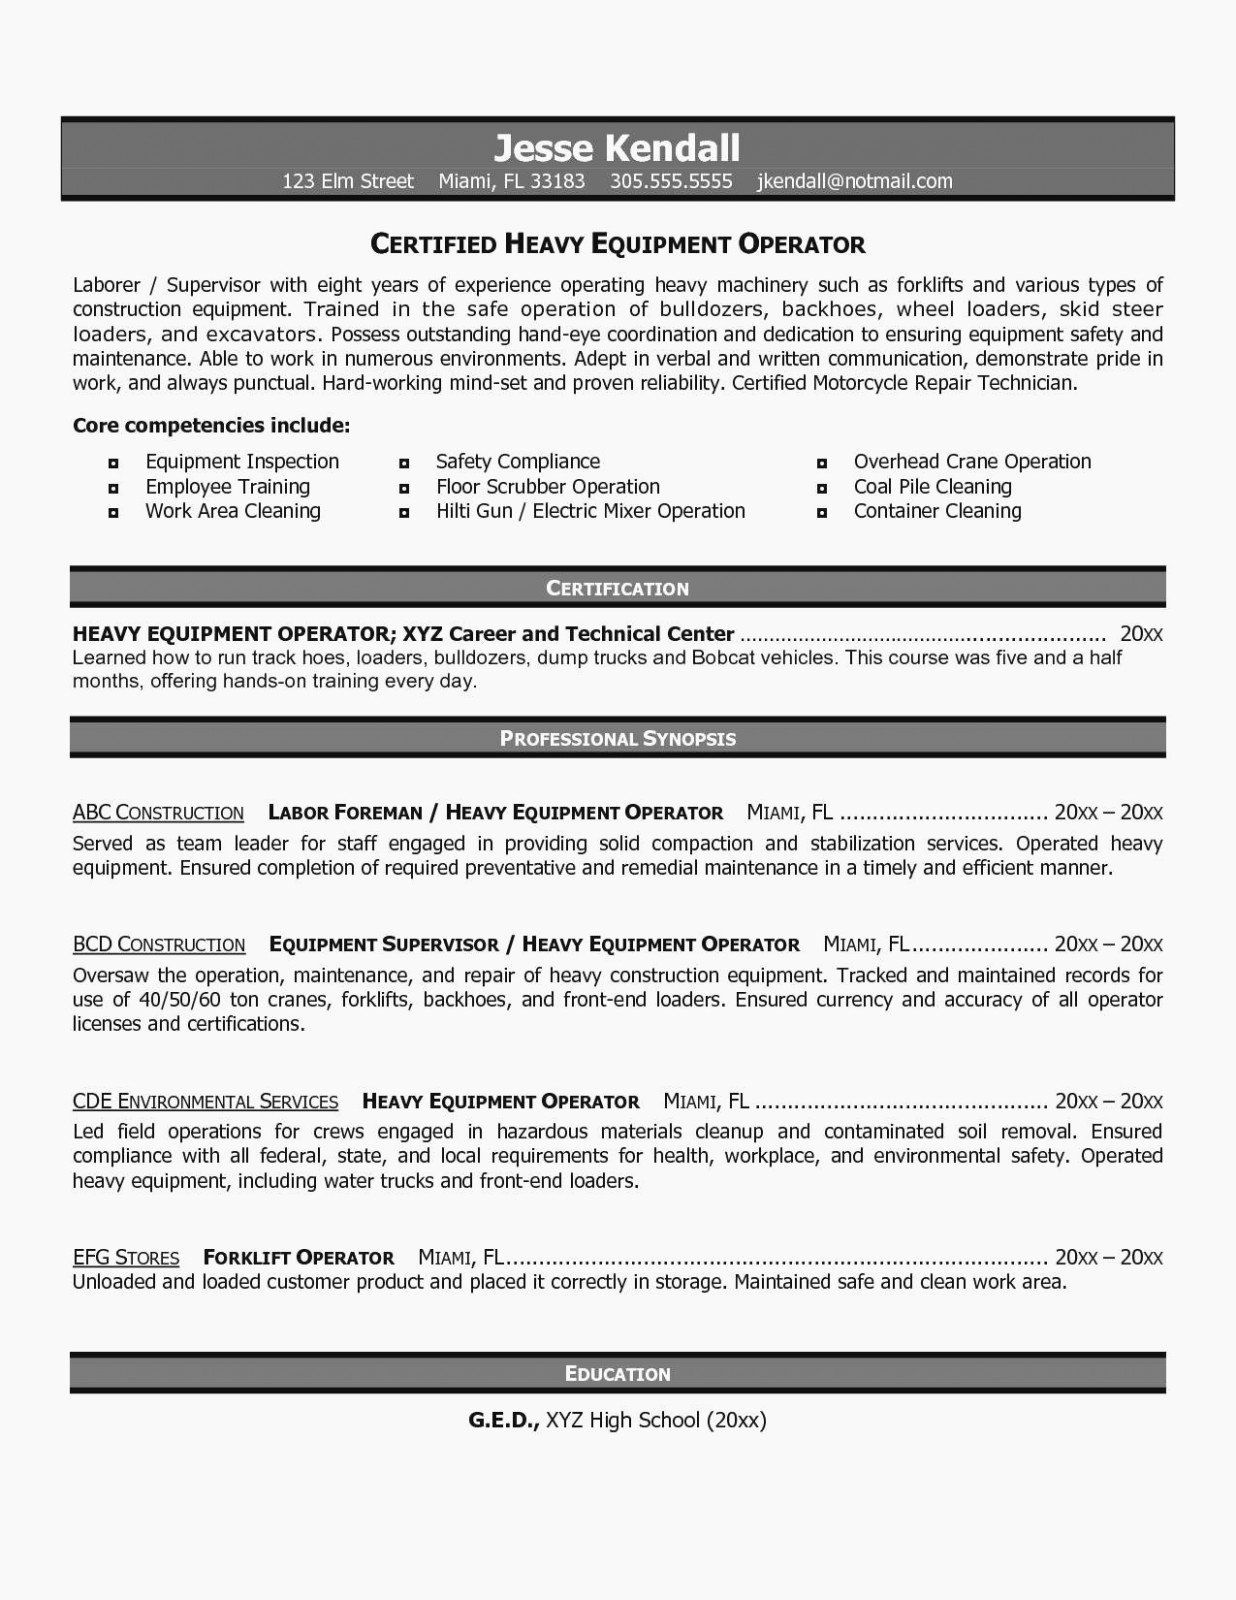 23 Stocker Job Description Resume In 2020 With Images Heavy